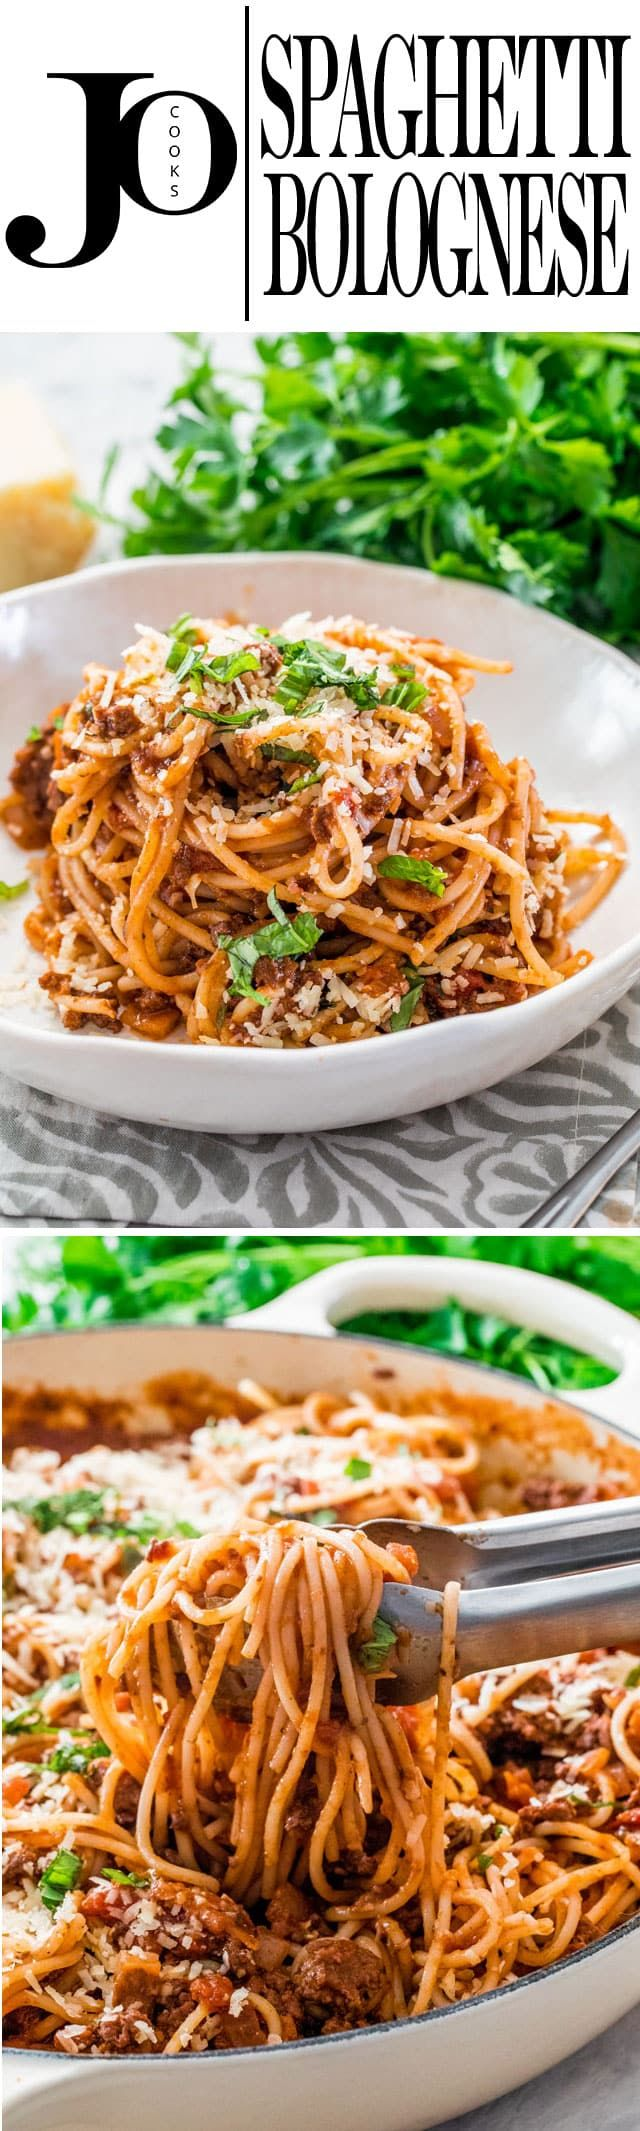 Spaghetti Bolognese is a classic Italian meat sauce that is a staple in most families. My super simple Spaghetti Bolognese is the perfect dinner for any night of the week and will wow your family or guests. www.jocooks.com #spaghettibolognese